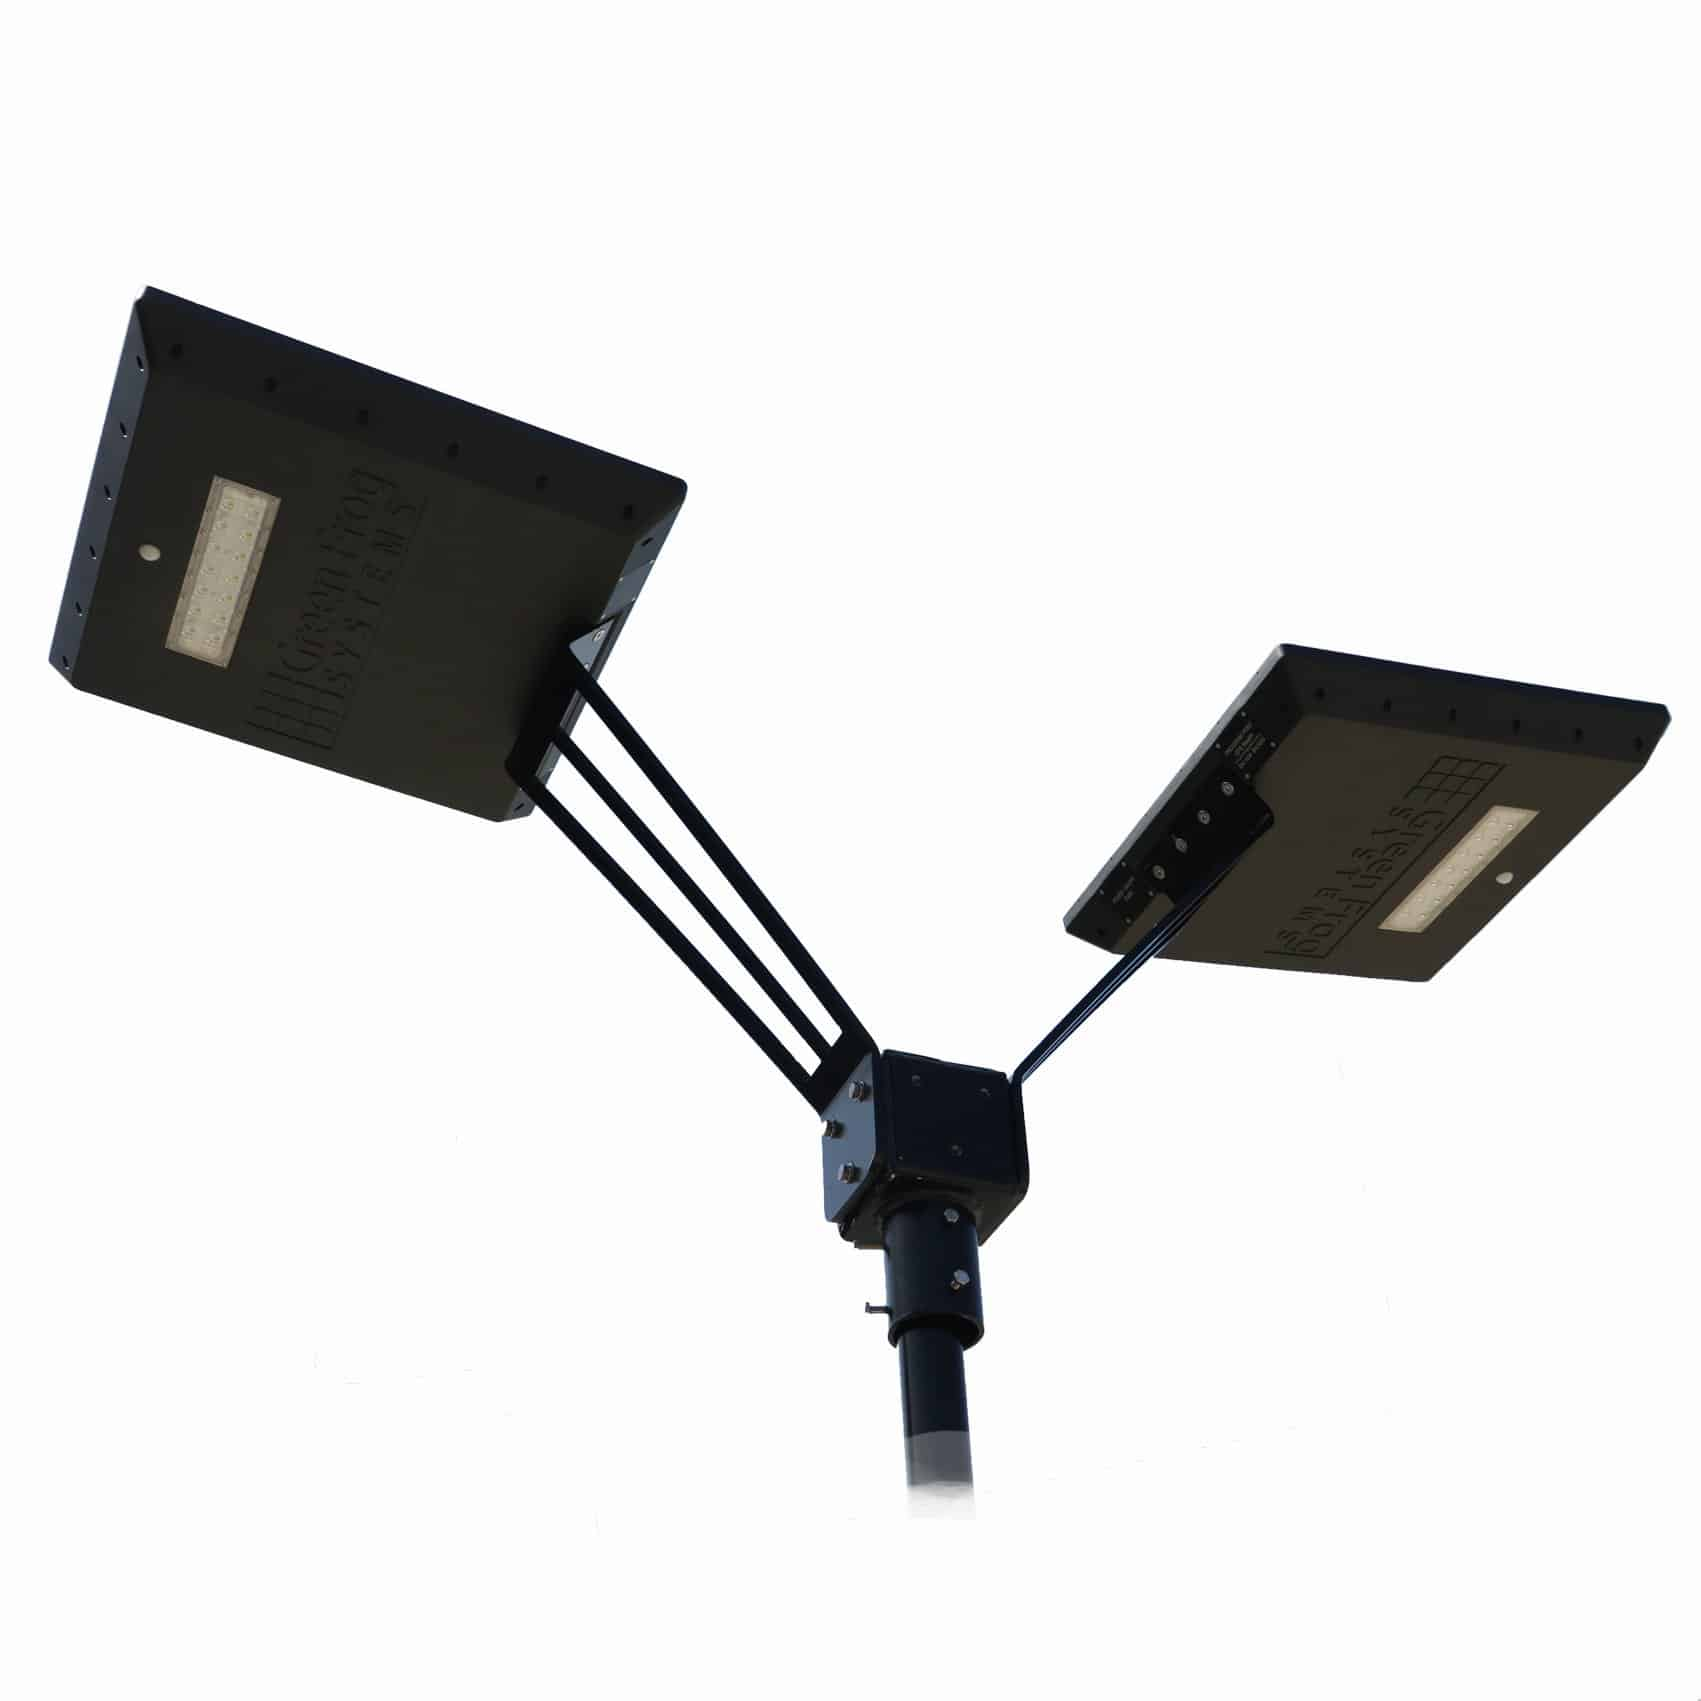 twin stealth solar path light